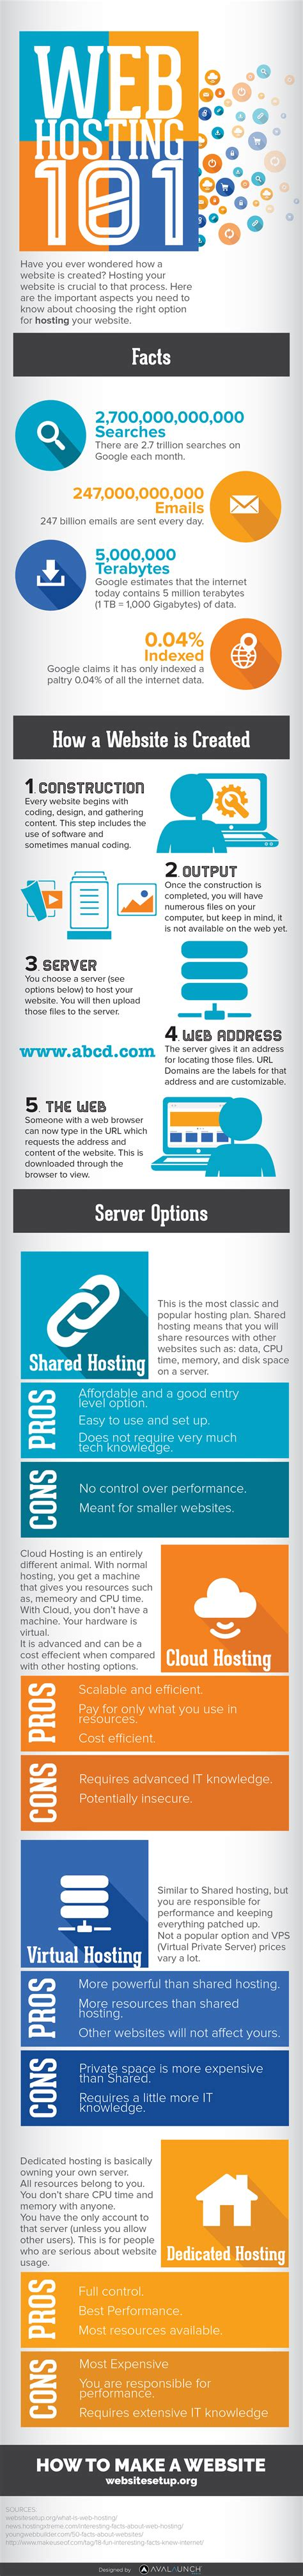 What Is Web Hosting? Shared Vs Vps Vs Dedicated Vs Cloud. Metlife Long Term Health Insurance. Recommended Hybrid Cars Immigration Law Change. Cosmetology School Fresno Ca. Va Mortgage Loan Calculator Voip Sip Service. Arizona Medicare Supplement Plans. Pennsylvania Auto Insurance Plan. Business Financing Bad Credit. How To Clean A Grill Without A Brush